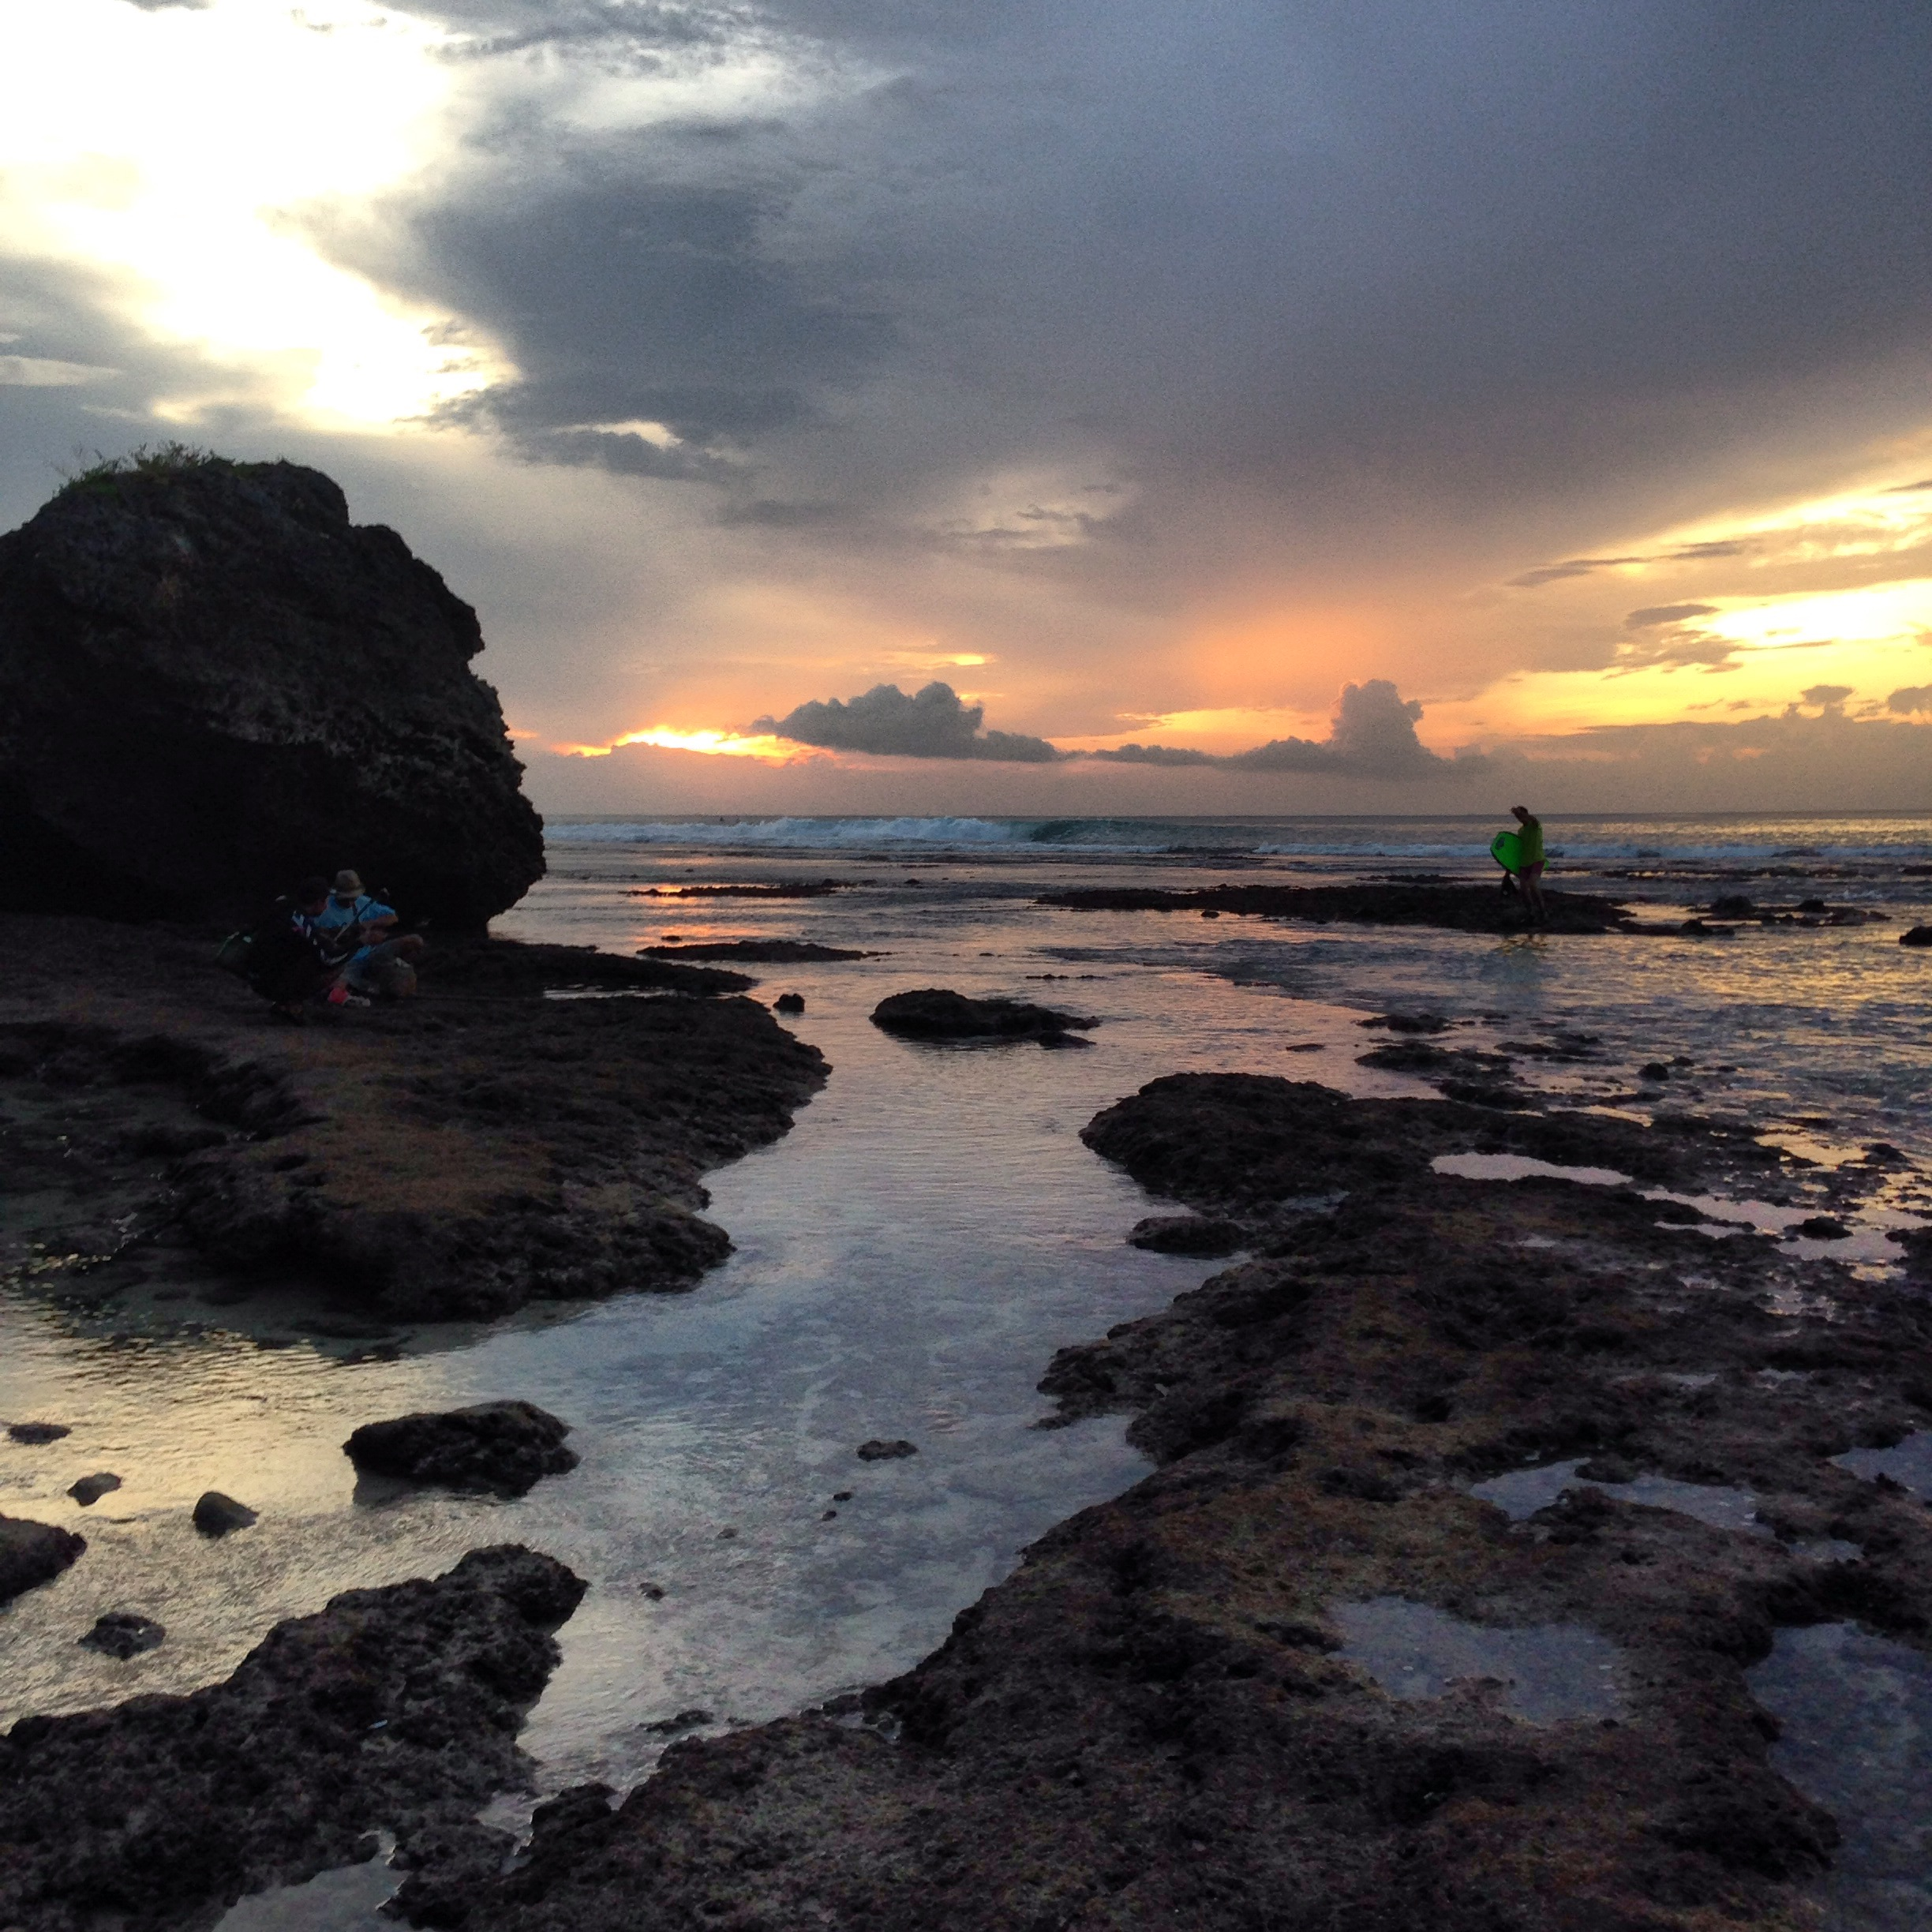 Padang Padang Beach at sunset. Pretty amazing.